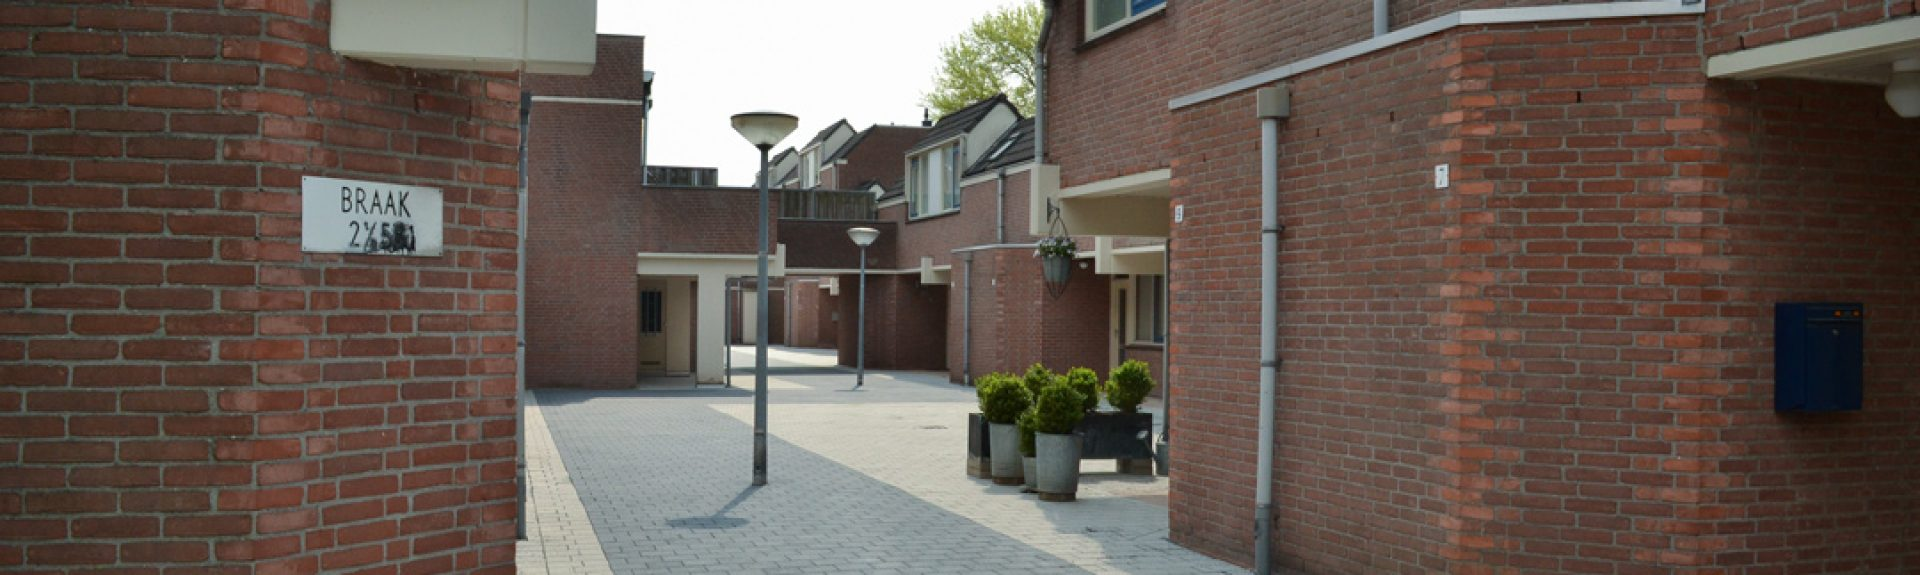 Waterdoorlatende verharding - De Braak